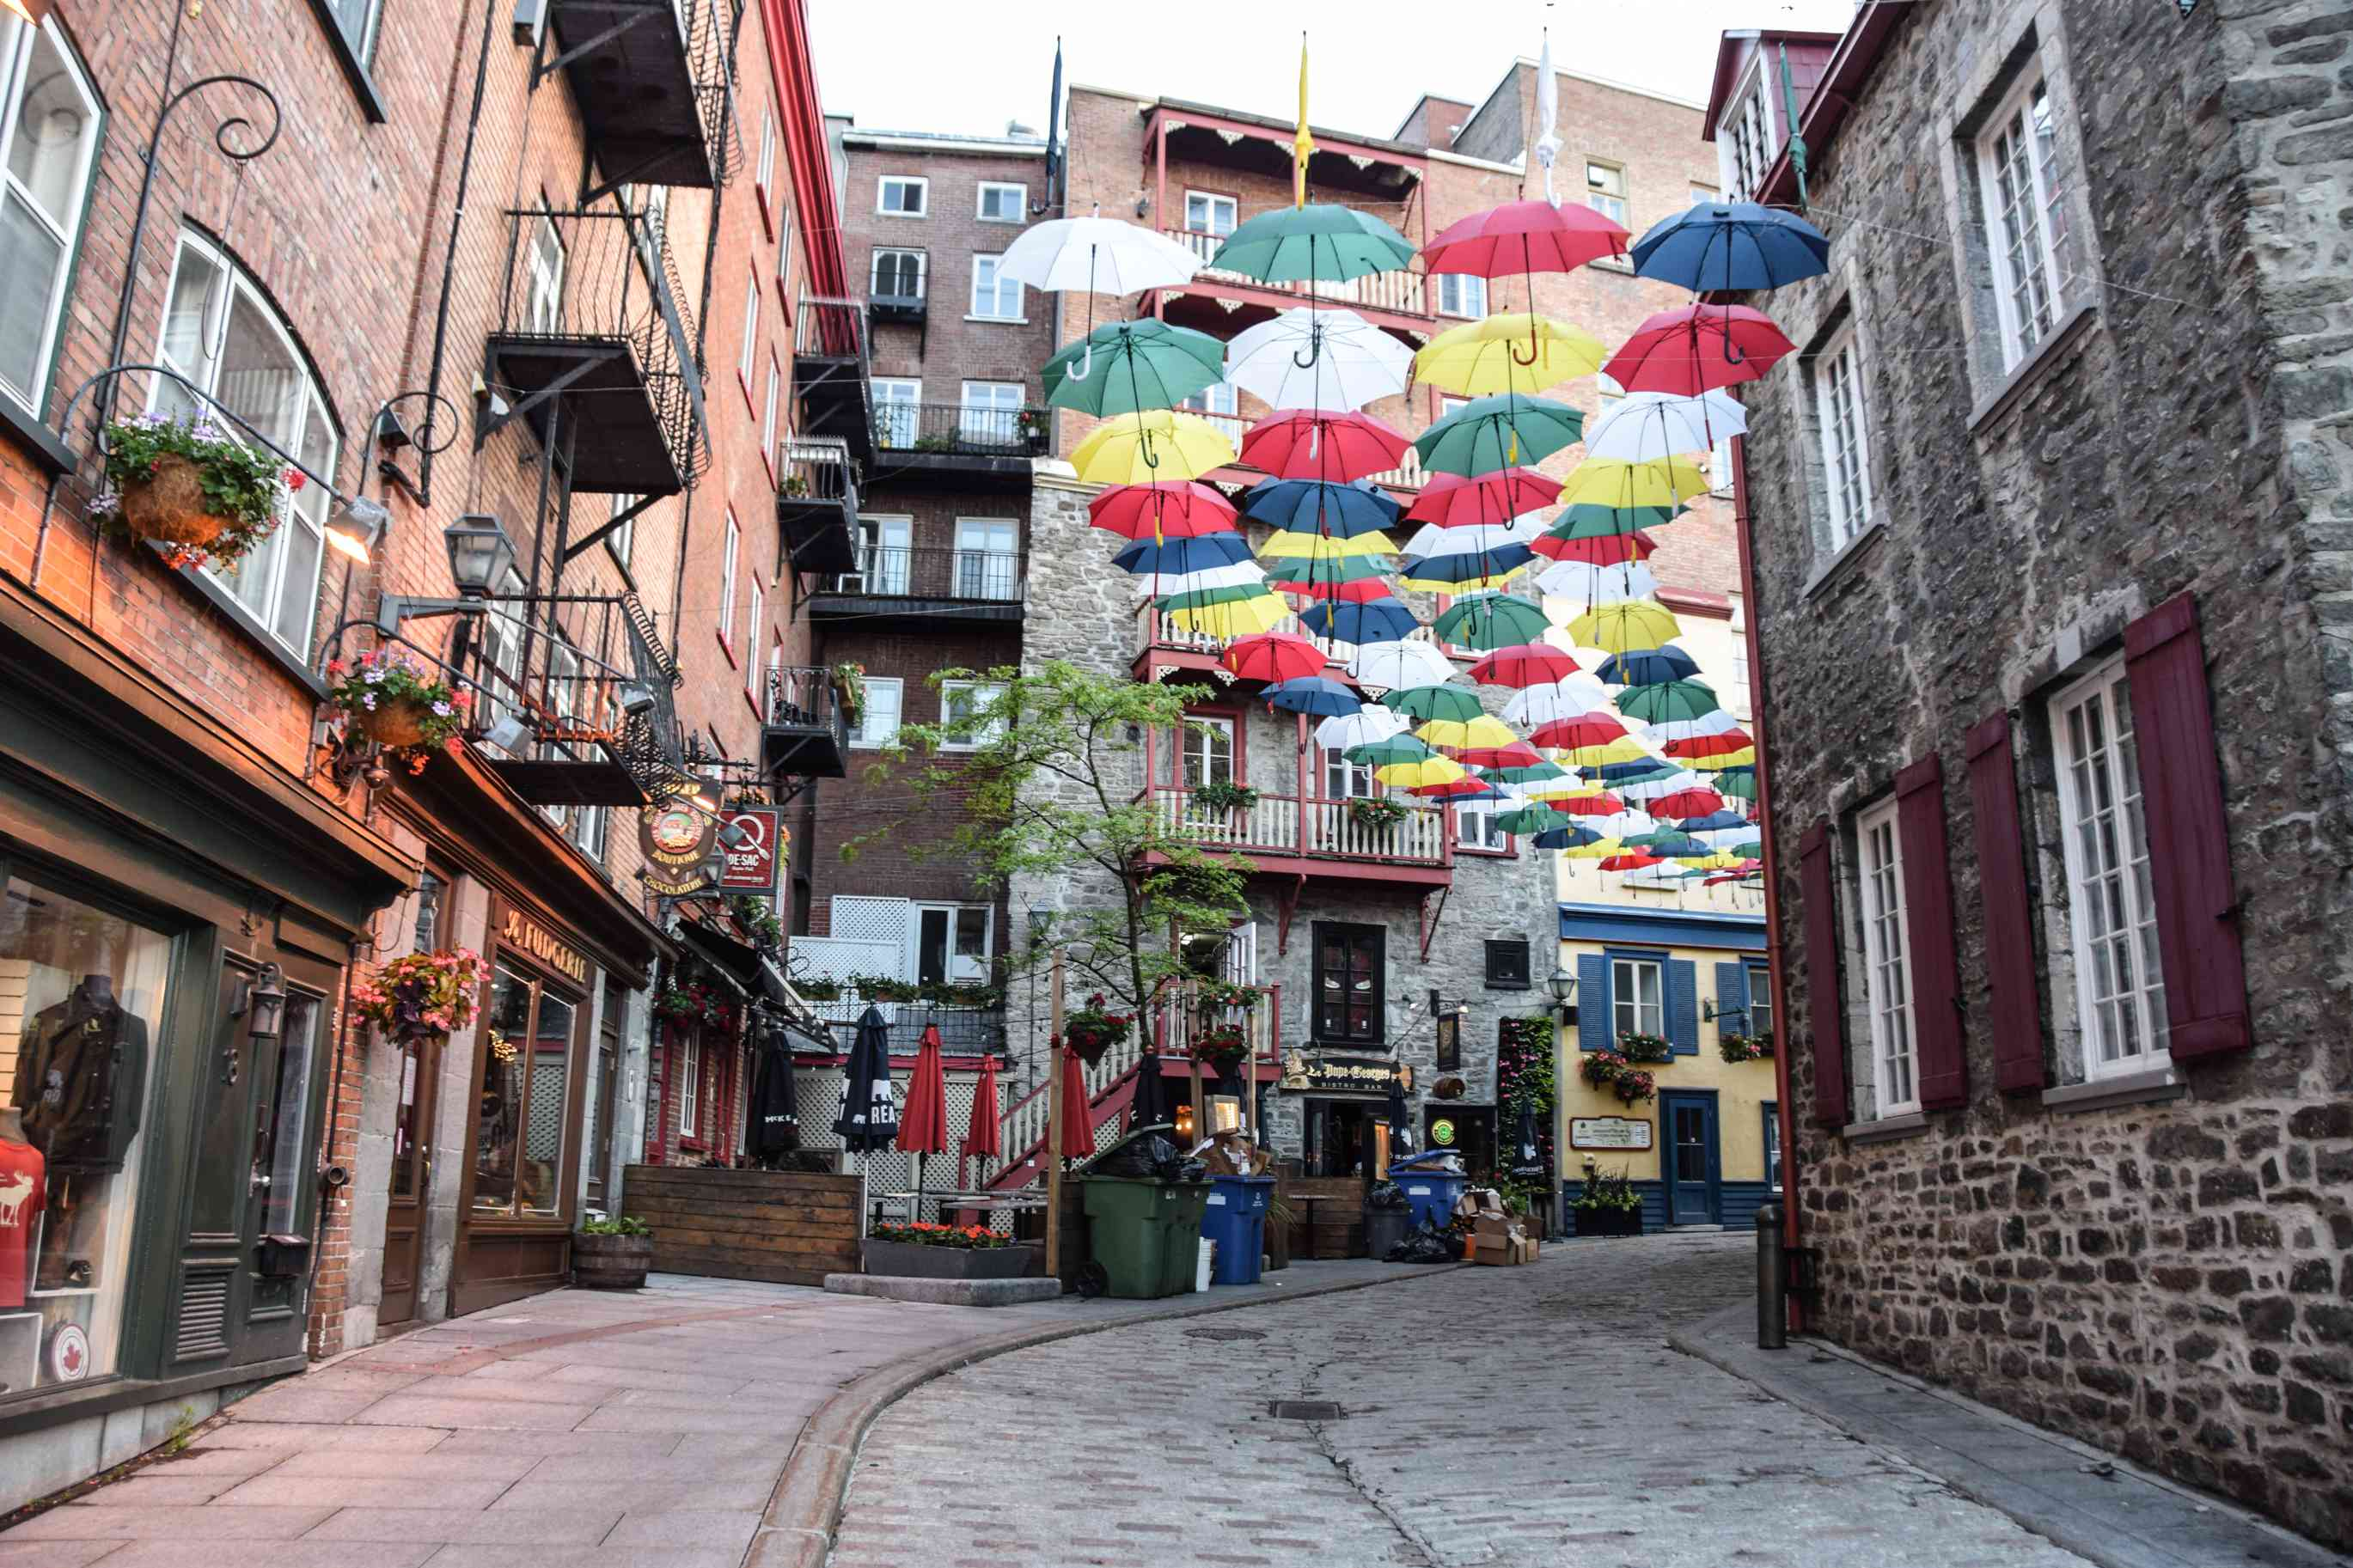 A cobble stone street with hanging umbrellas